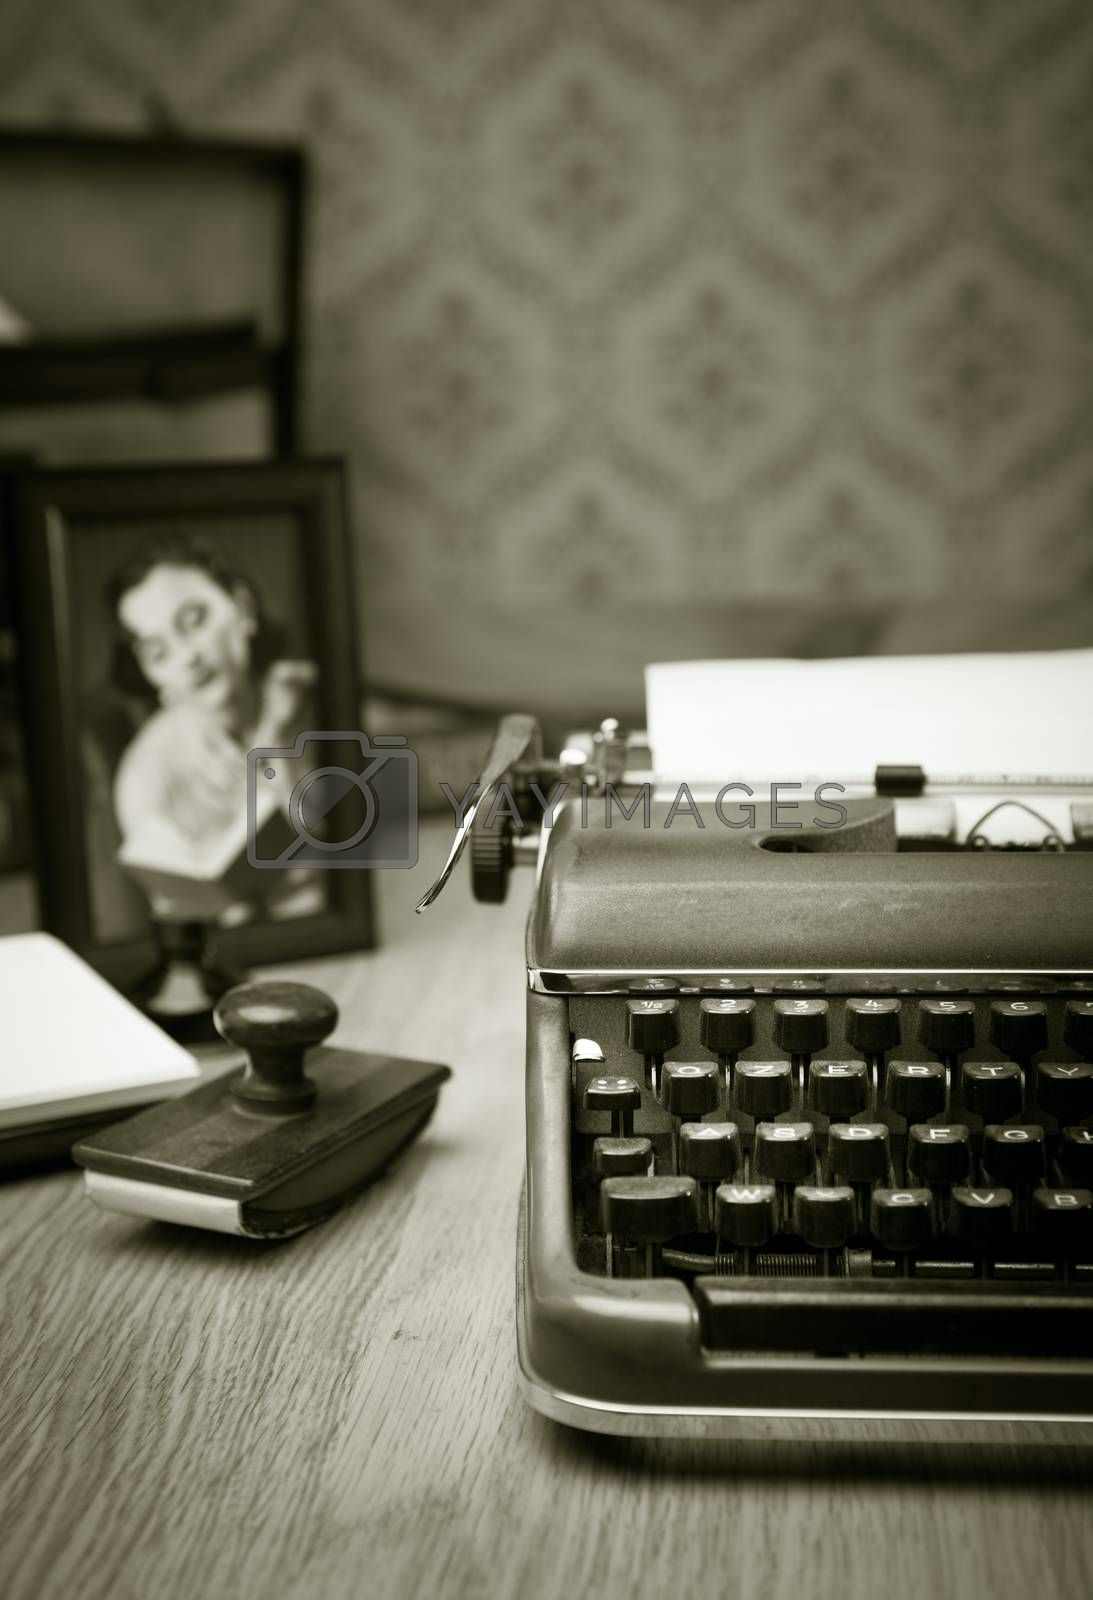 Vintage typewriter on a wooden desk with old frame and picture on background.